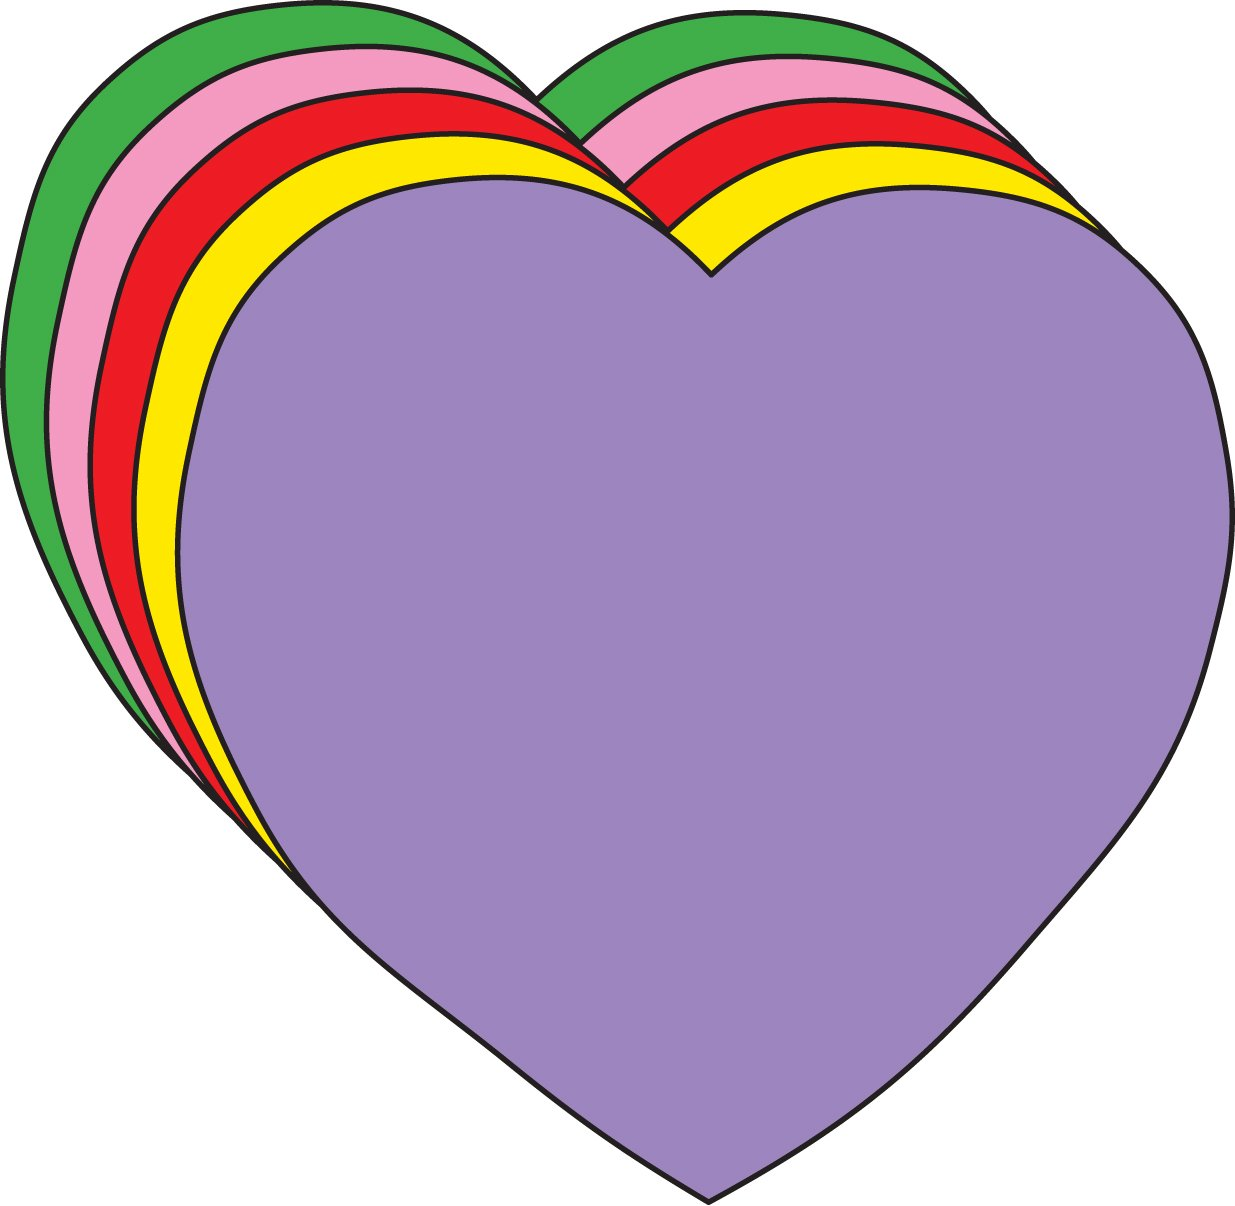 """5.5/"""" Heart Large Assorted Color Creative Cut-Outs 31 Cut-Outs in a Pack for Kids/' Love and Peace School Craft Projects Valentine/'s Day Craft."""